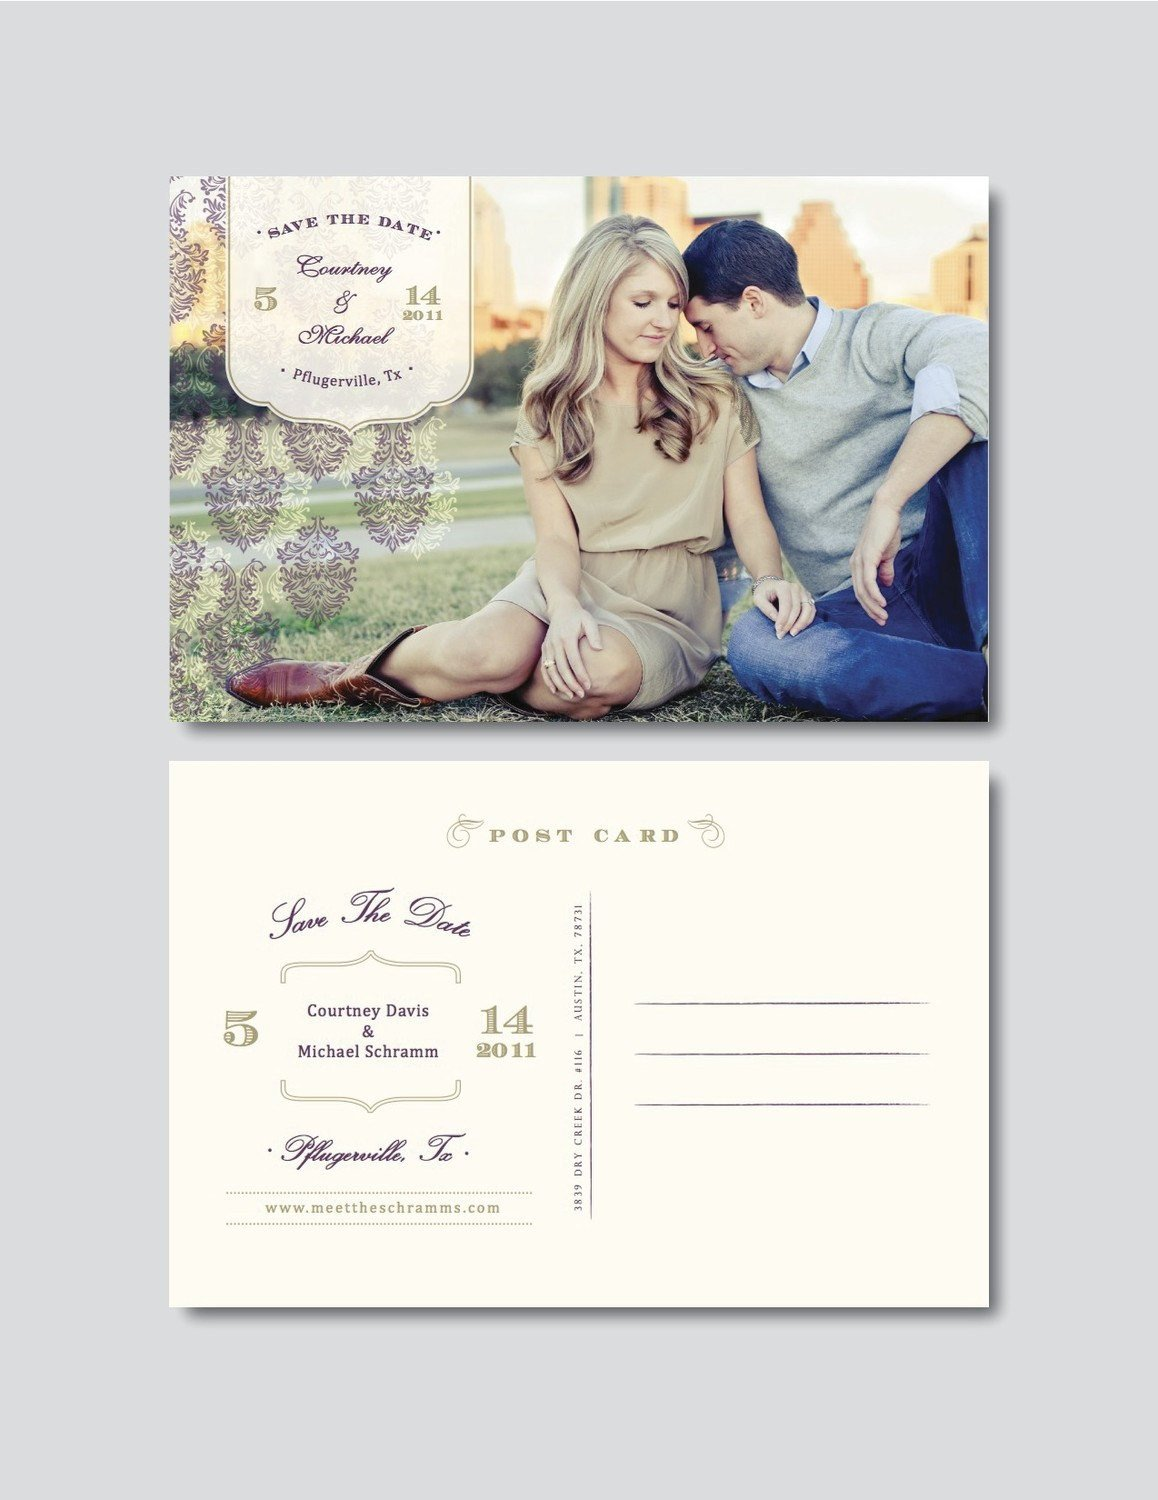 Save the Date Postcard Templates Vintage Save the Date Postcard Template Digital Shop